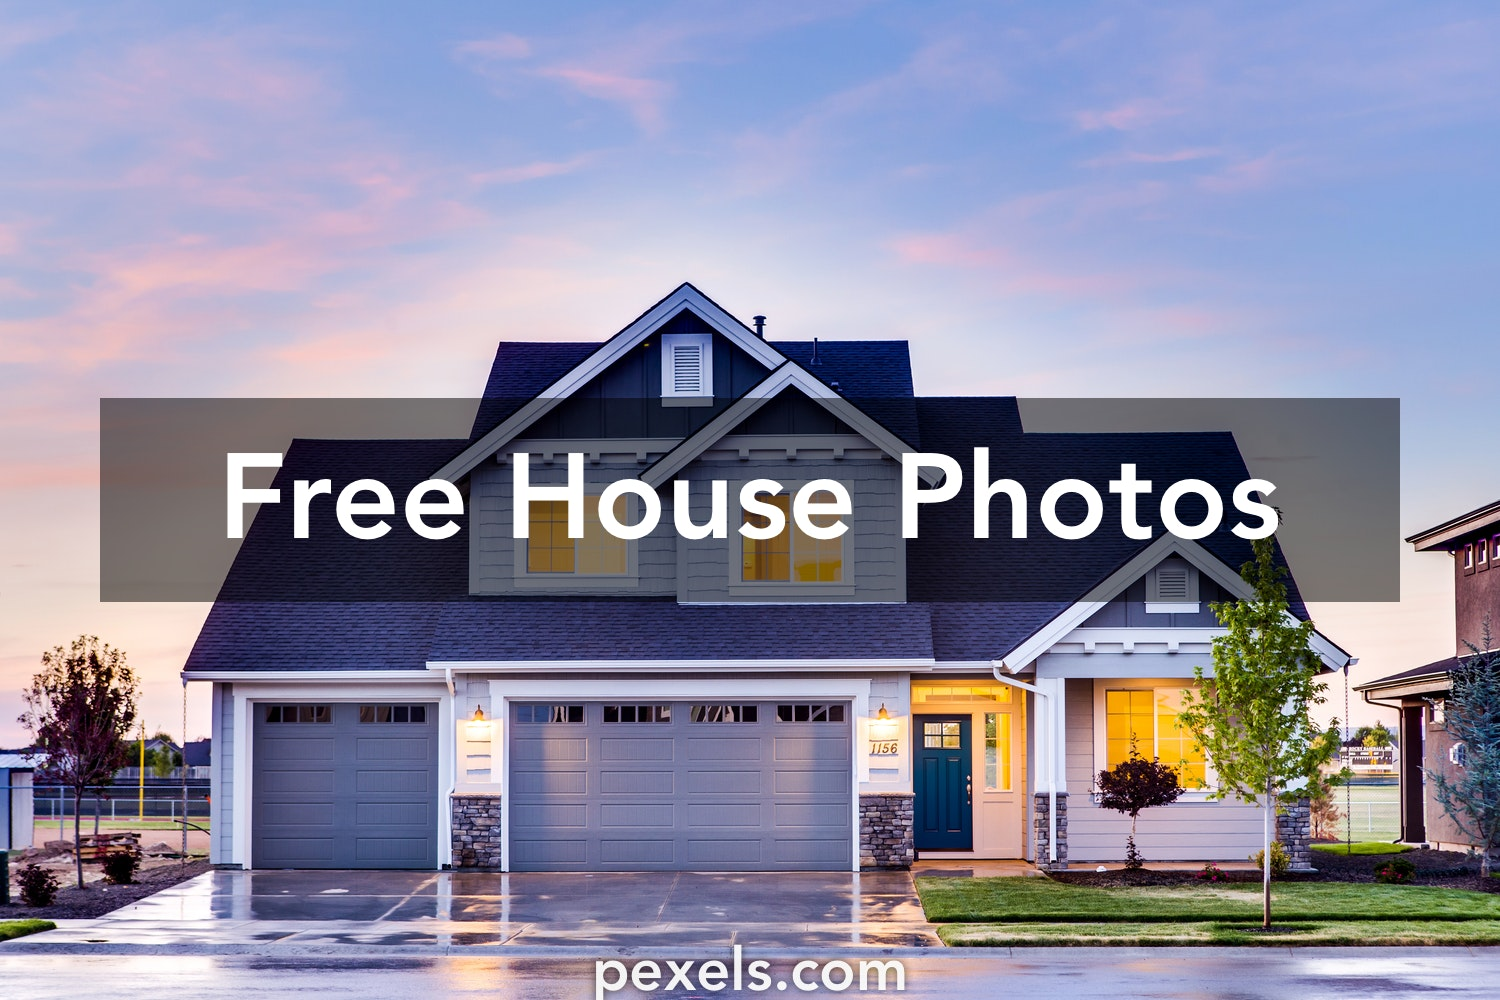 House photos pexels free stock photos for Free house photos